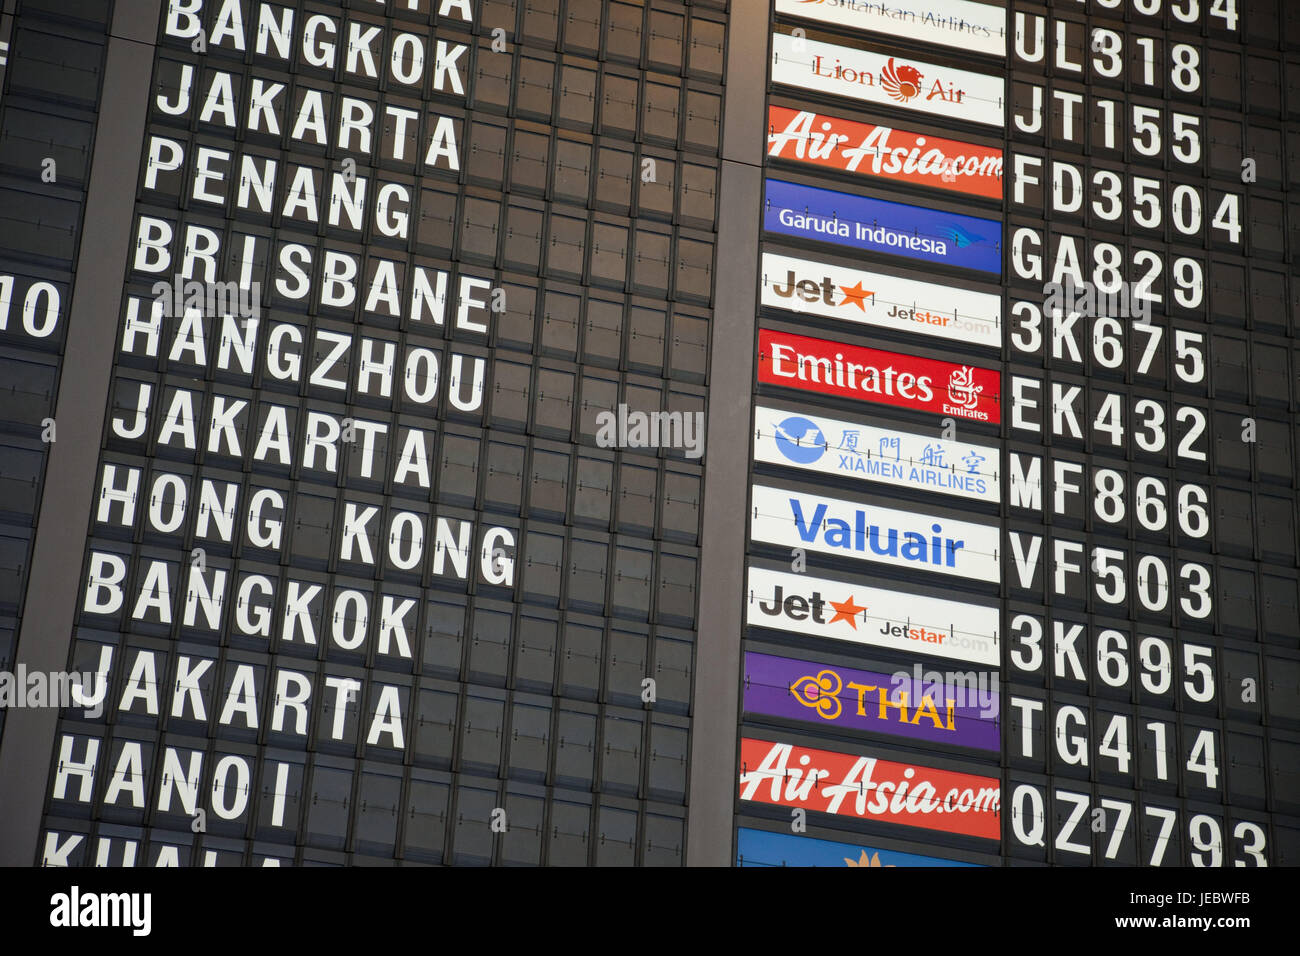 Singapore, airport, indicator panel, Asia, takeoff, information, travel, journey by air, vacation, nobody, tourism, - Stock Image